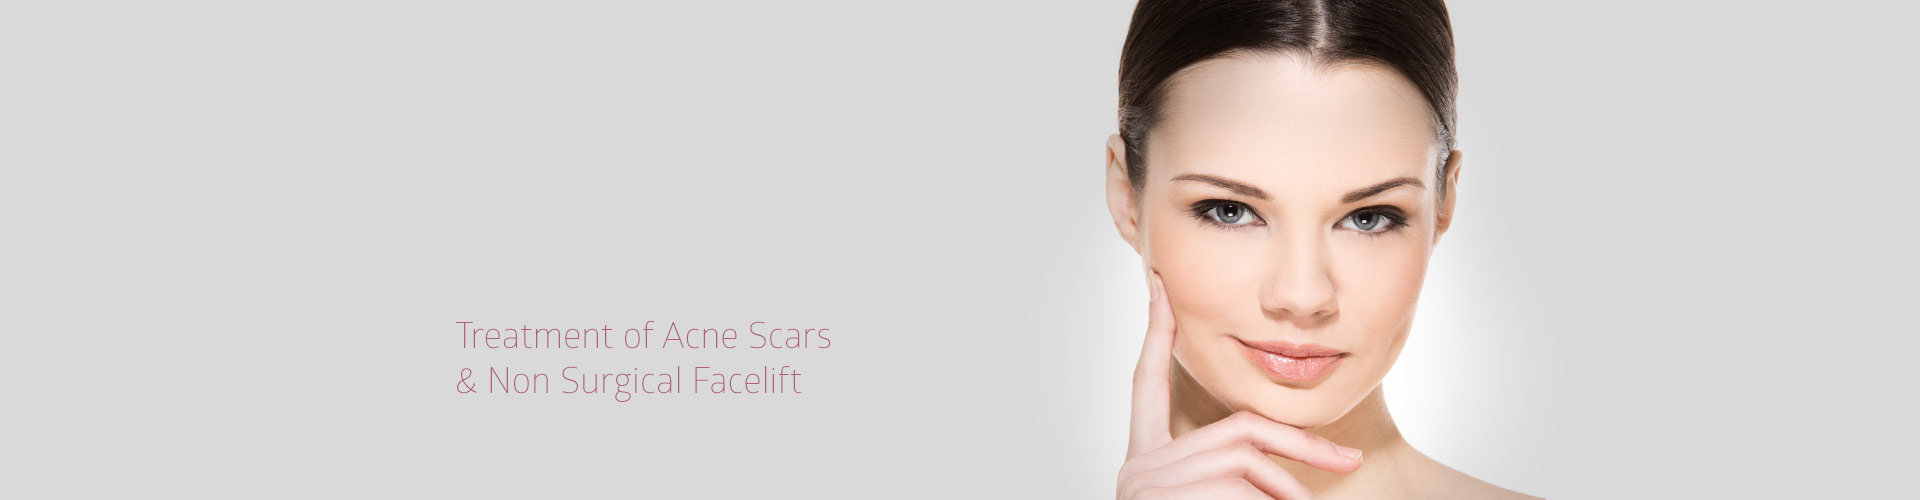 Treatment-of-Acne-Scars-Non-Surgical-Facelift2